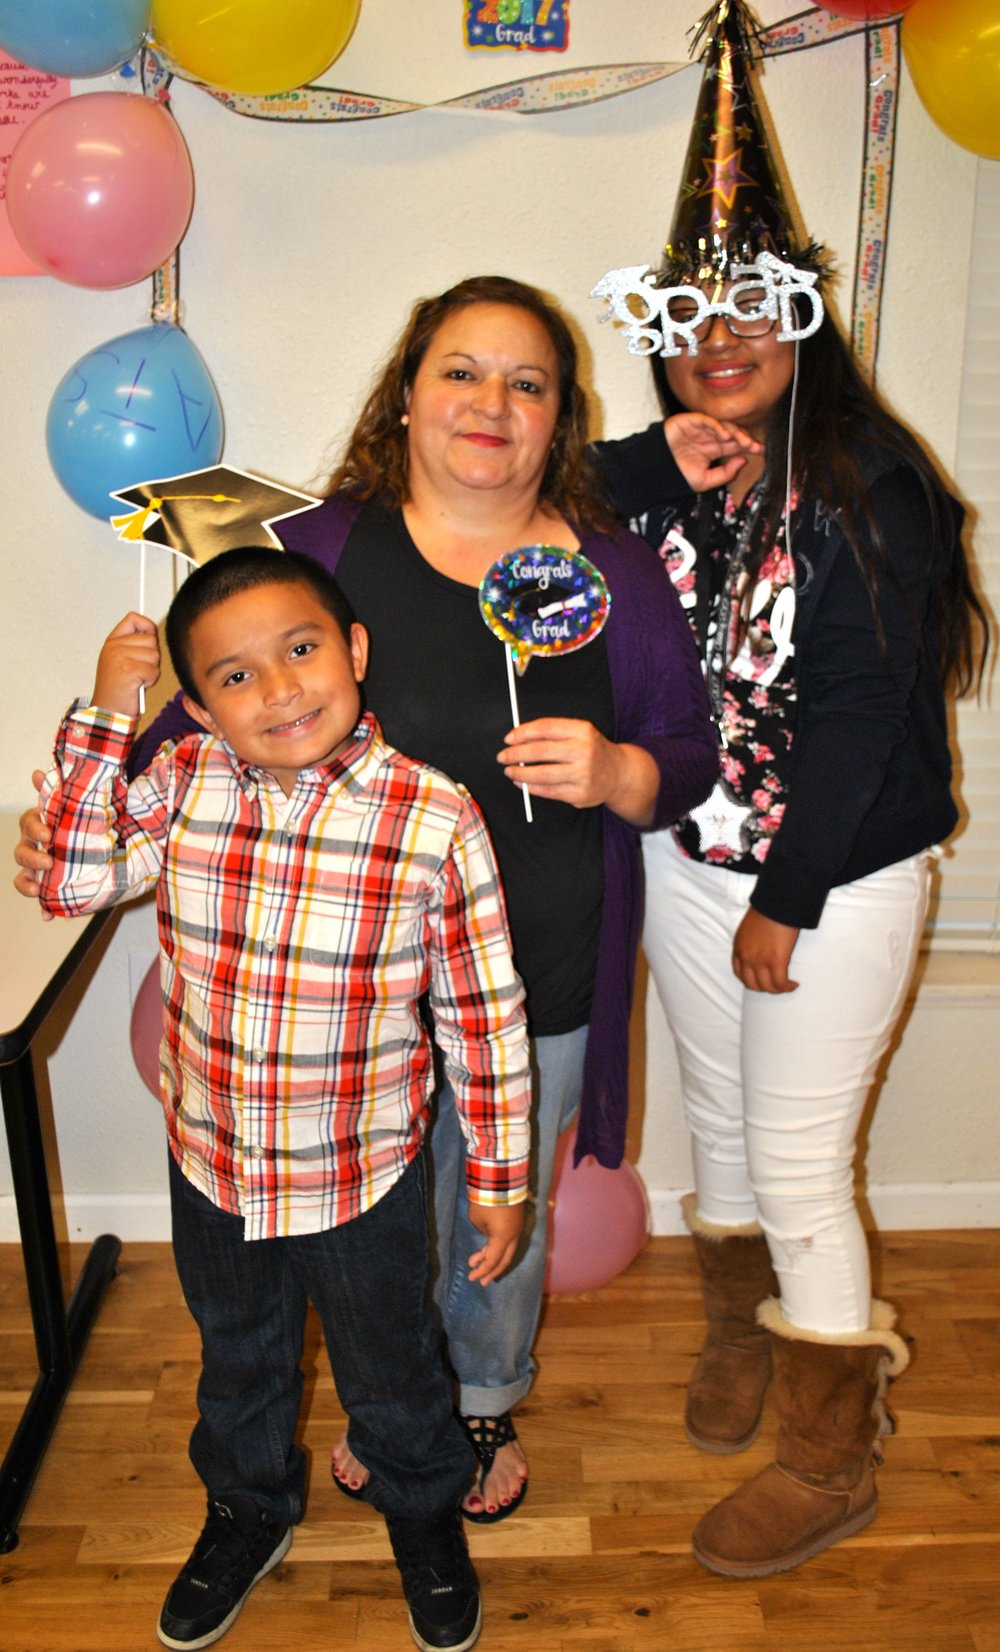 Middle School Graduation - A parent attending BCM's middle school graduation party poses with her children for a photo.